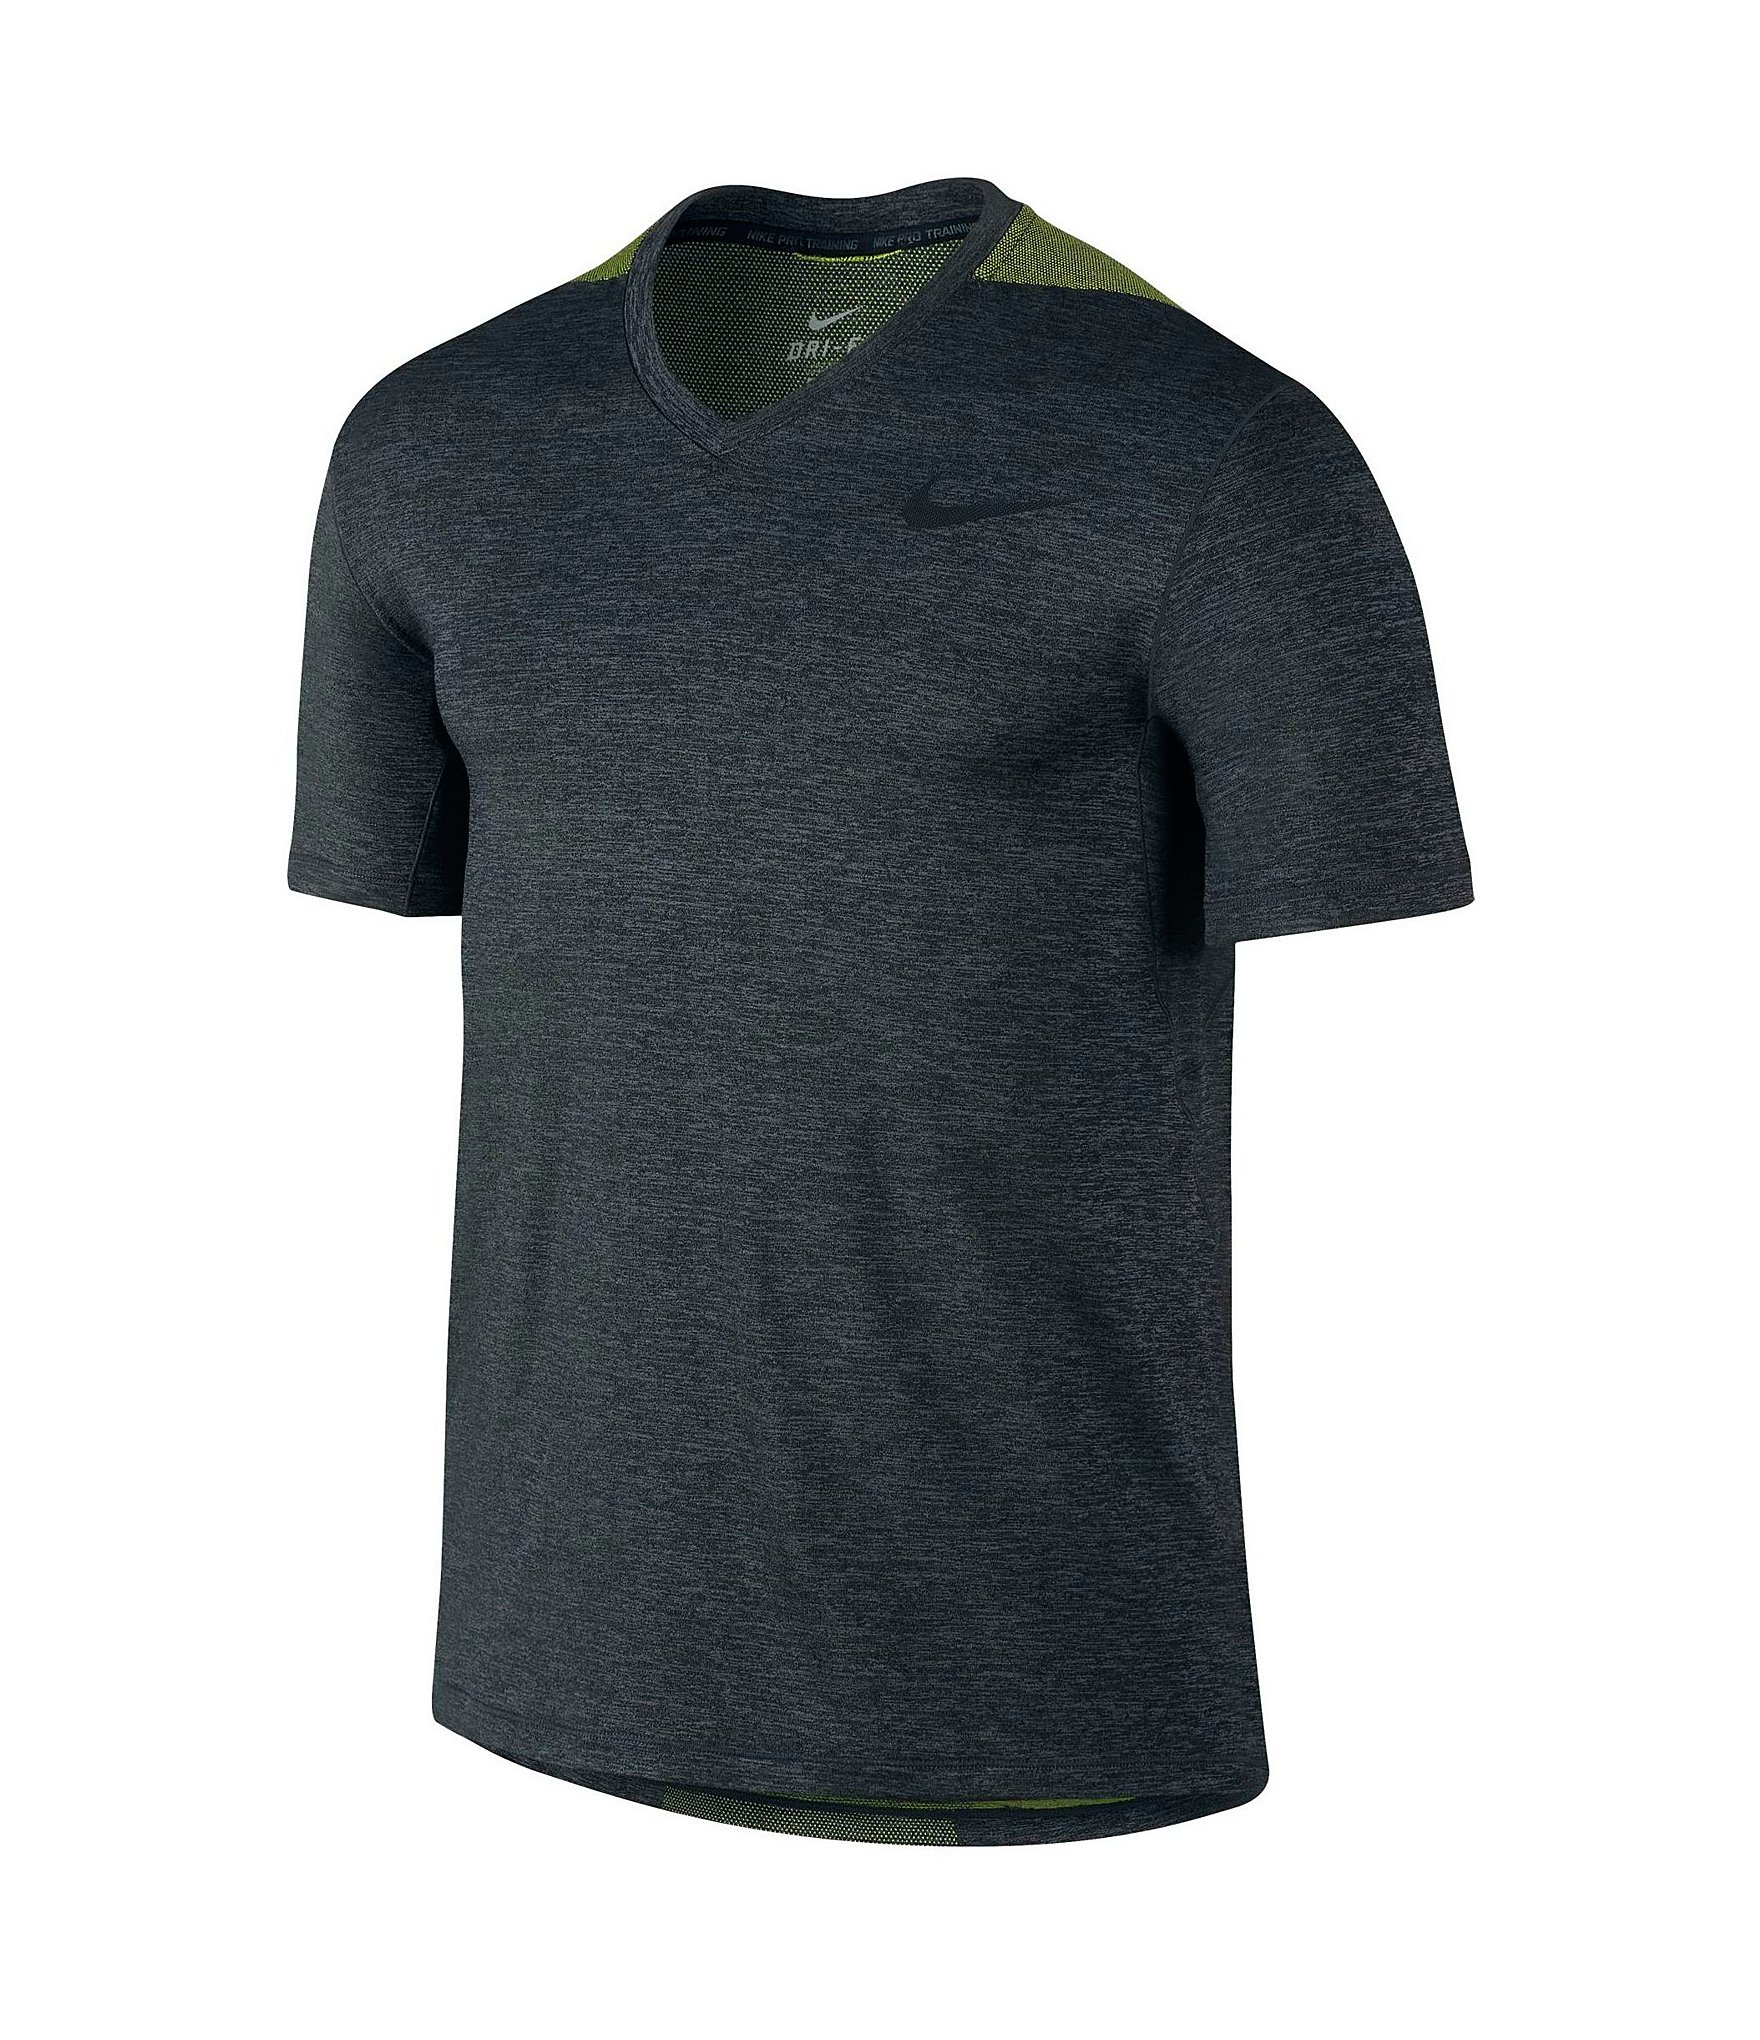 Nike ultimatum vapor shirt in gray for men lyst for Dri fit dress shirts